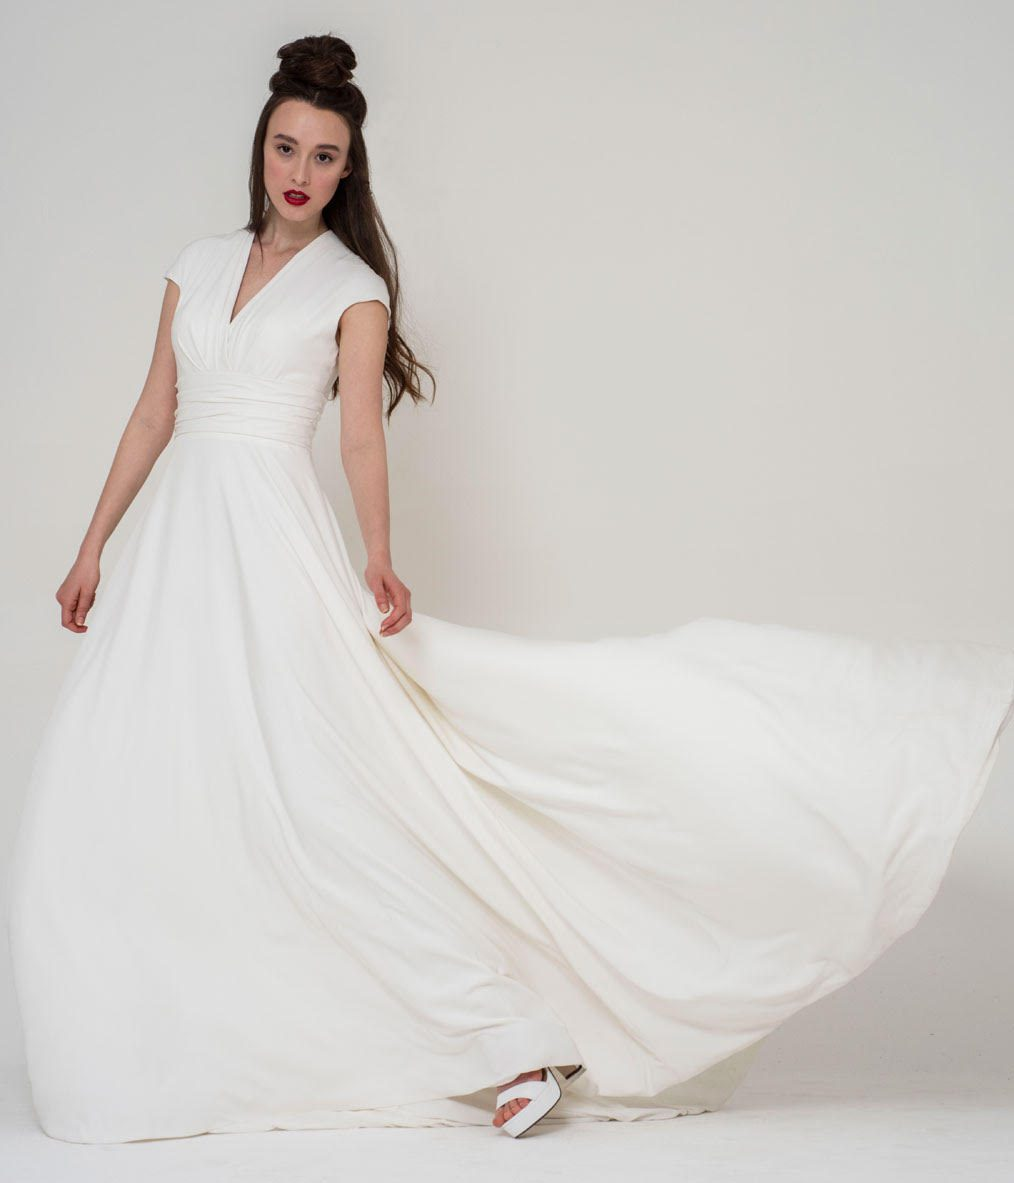 V-neck style wedding dress by Freda Bennett structured wedding dress Warwickshire